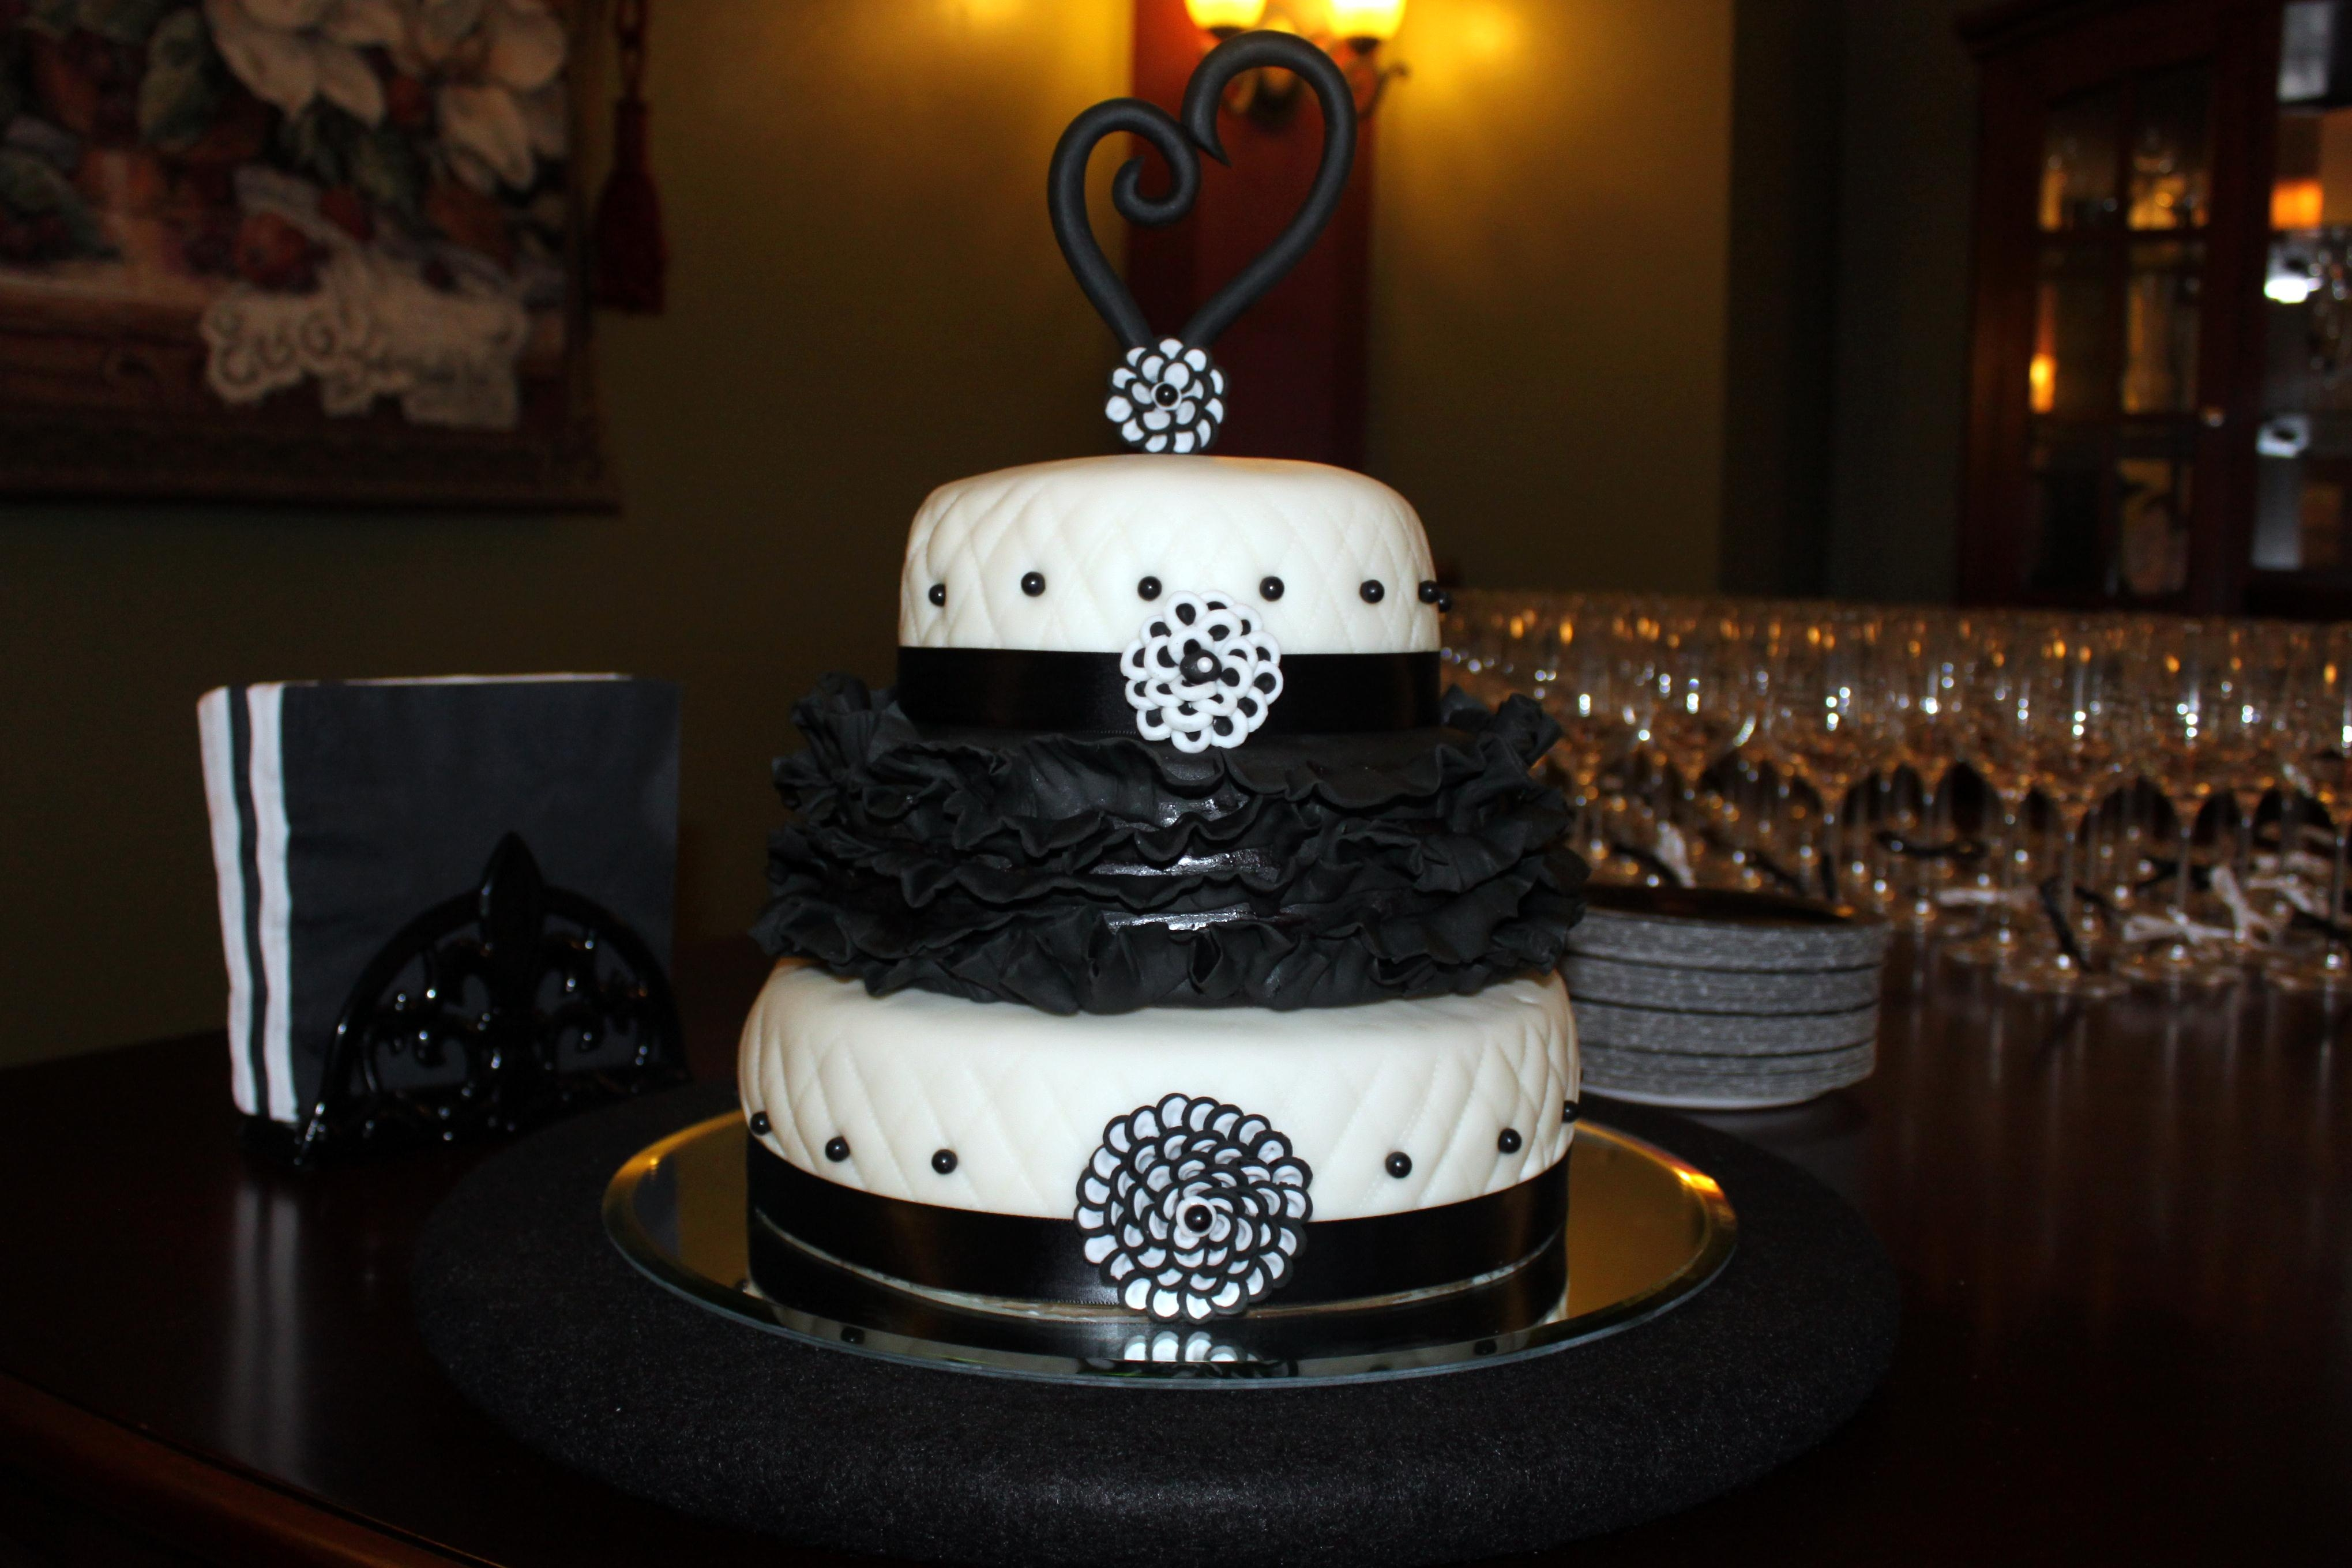 Black and White Engagement Cake for a black and white themed engagement party.  Cake is champagne flavored filled with raspberry mousse, covered in white chocolate ganache and fondant